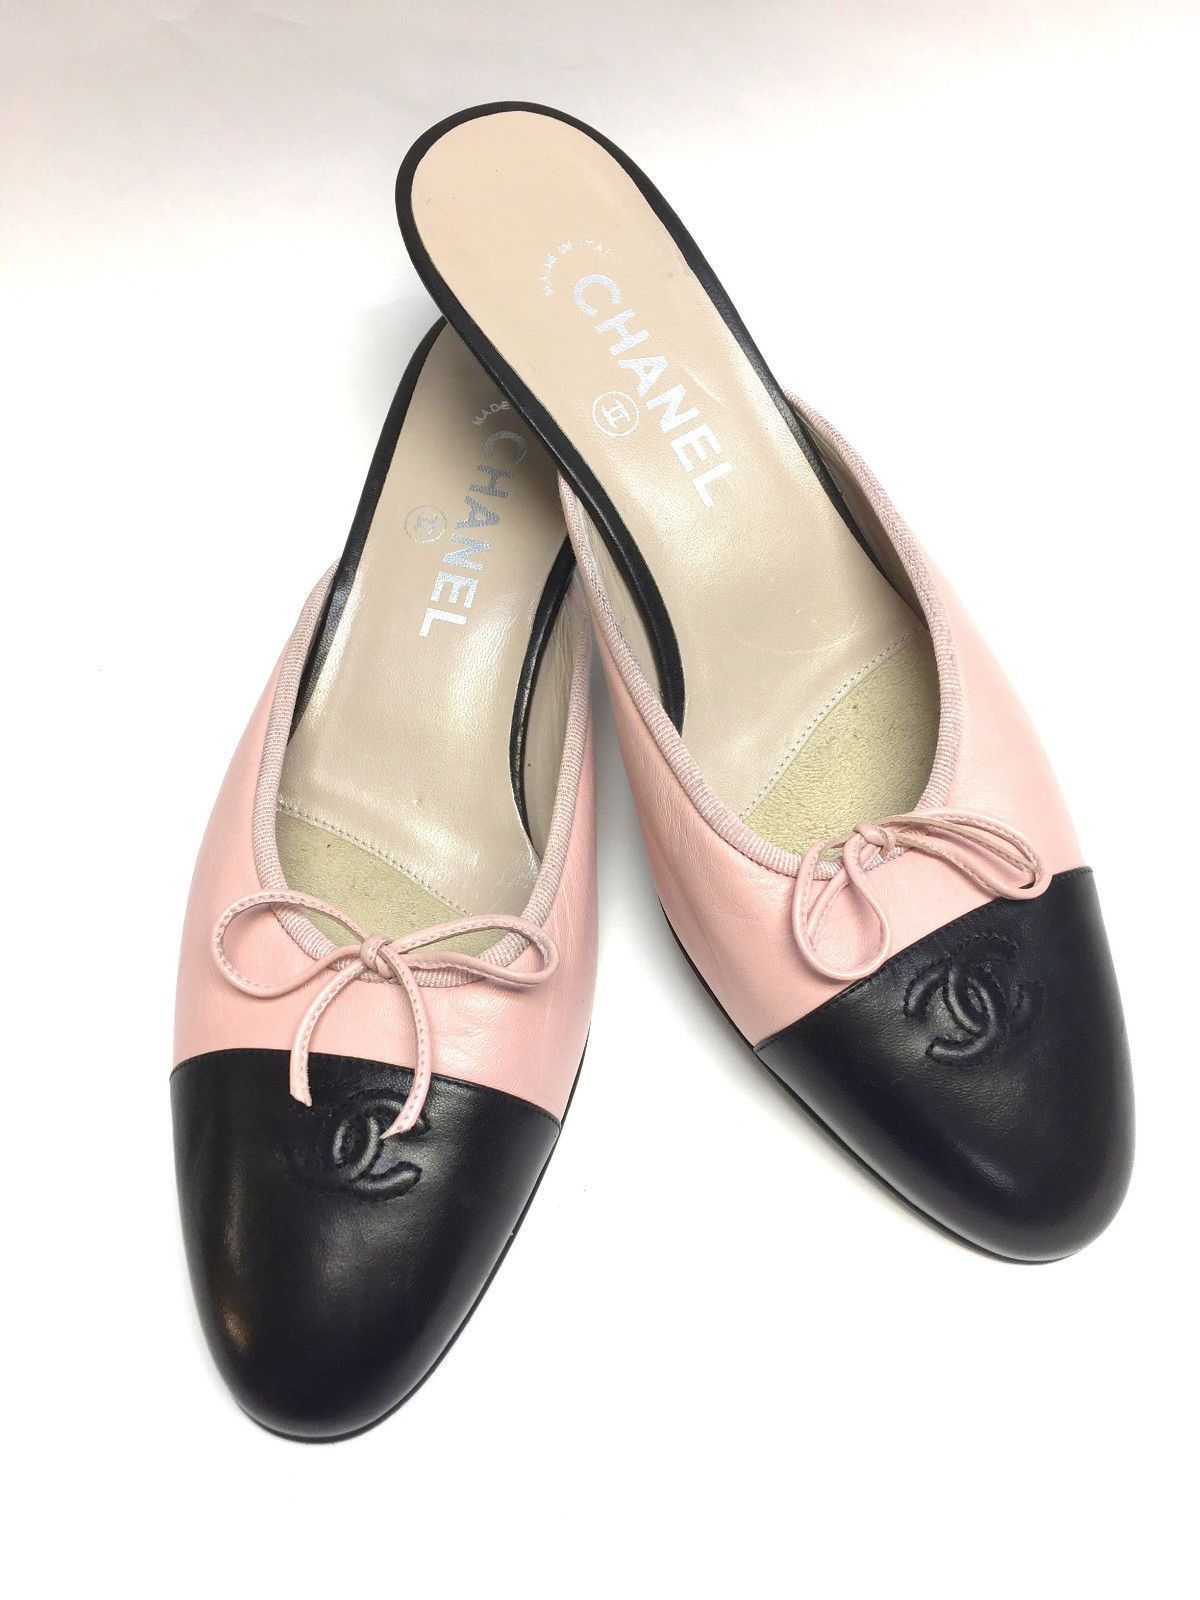 a274cbddbb CHANEL Pink Leather Kitten Heel Slip-On Ballet Mules with Black Leather Cap  Toe Size: 40 / 10